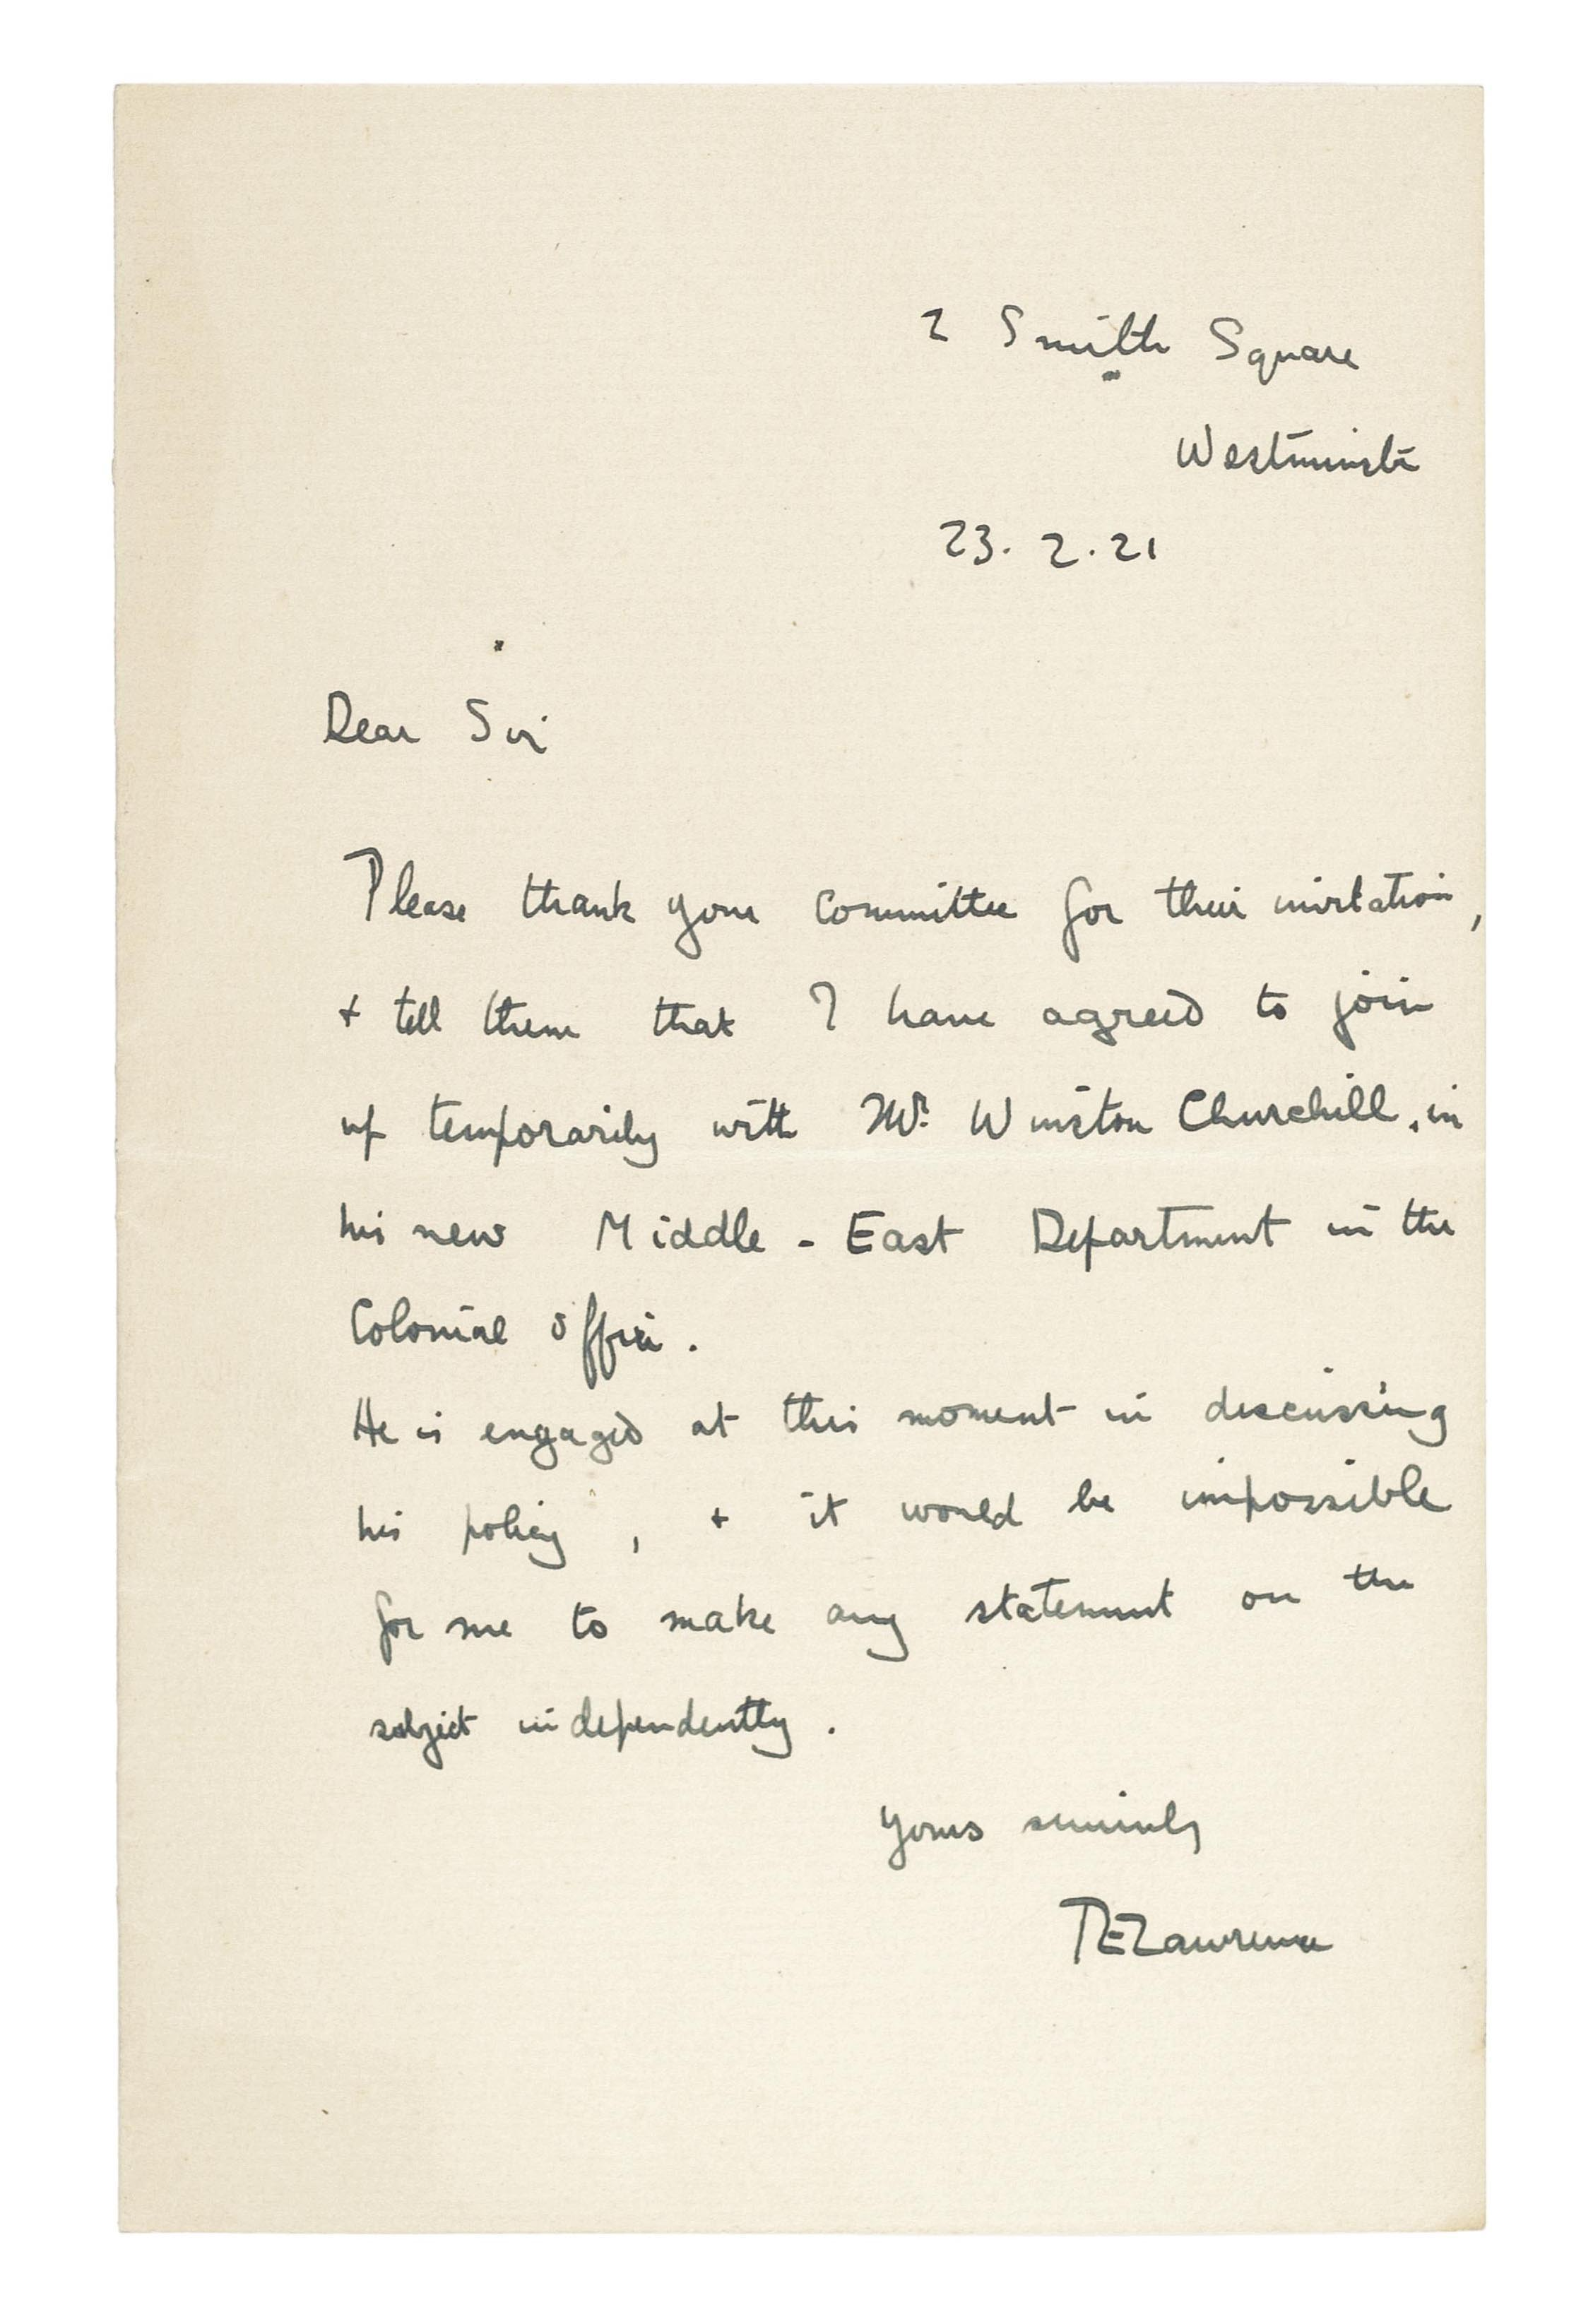 LAWRENCE, Thomas Edward (1888-1935). Autograph letter signed ('T.E. Lawrence') to an unidentified recipient [John Henderson, secretary of the National Liberal Club], 2 Smith Square, 23 February 1921, informing Henderson that 'I have agreed to join up temporarily with Mr Winston Churchill in his new Middle-East Department in the Colonial Office'; as Churchill is 'engaged at this moment in discussing his policy ... it would be impossible for me to make any statement on the subject independently', one page, 8vo.